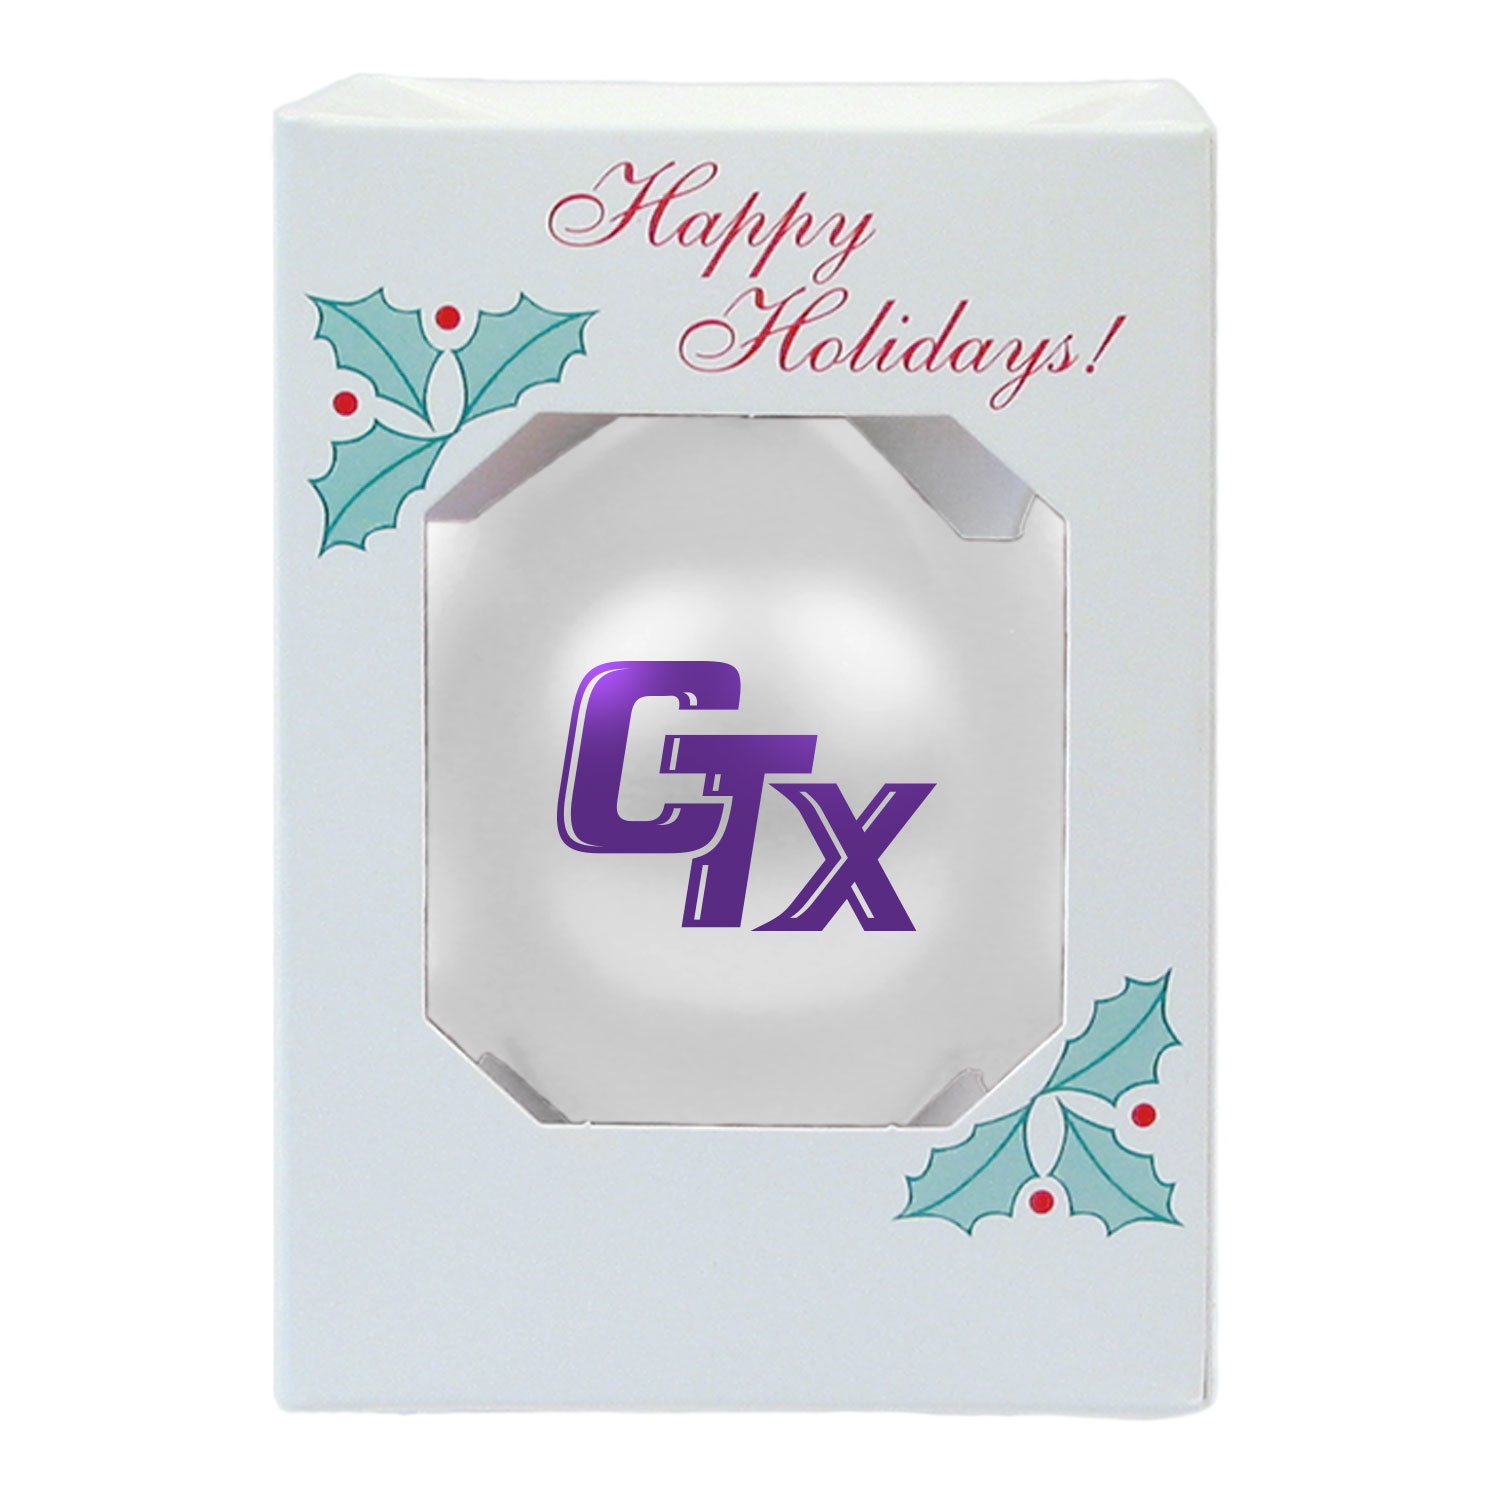 CTX Shatterproof Ornament - Pearl White